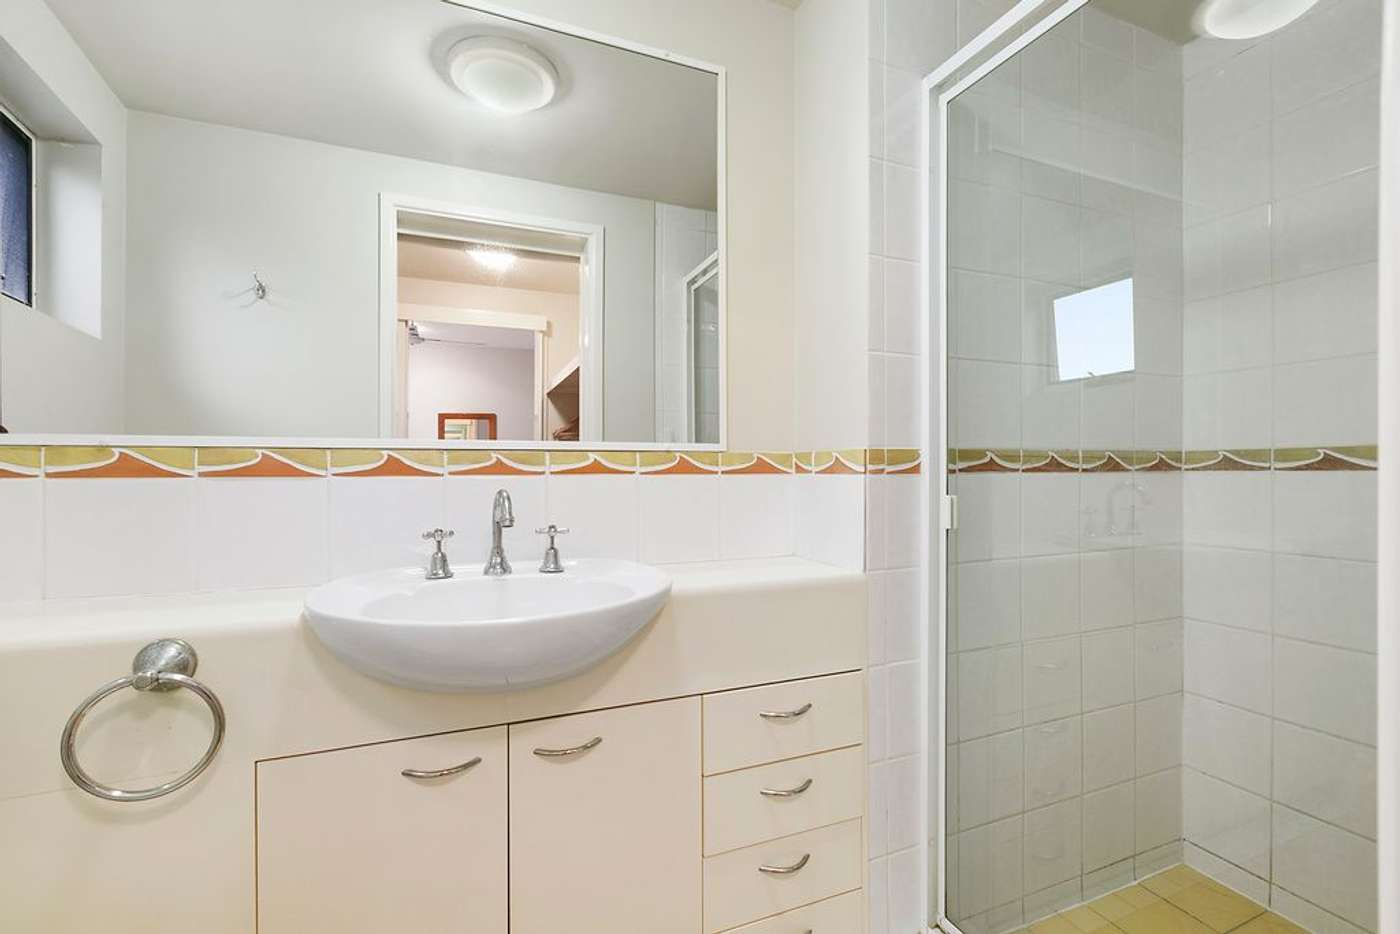 Fifth view of Homely unit listing, 8/1 Selene Street, Sunrise Beach QLD 4567